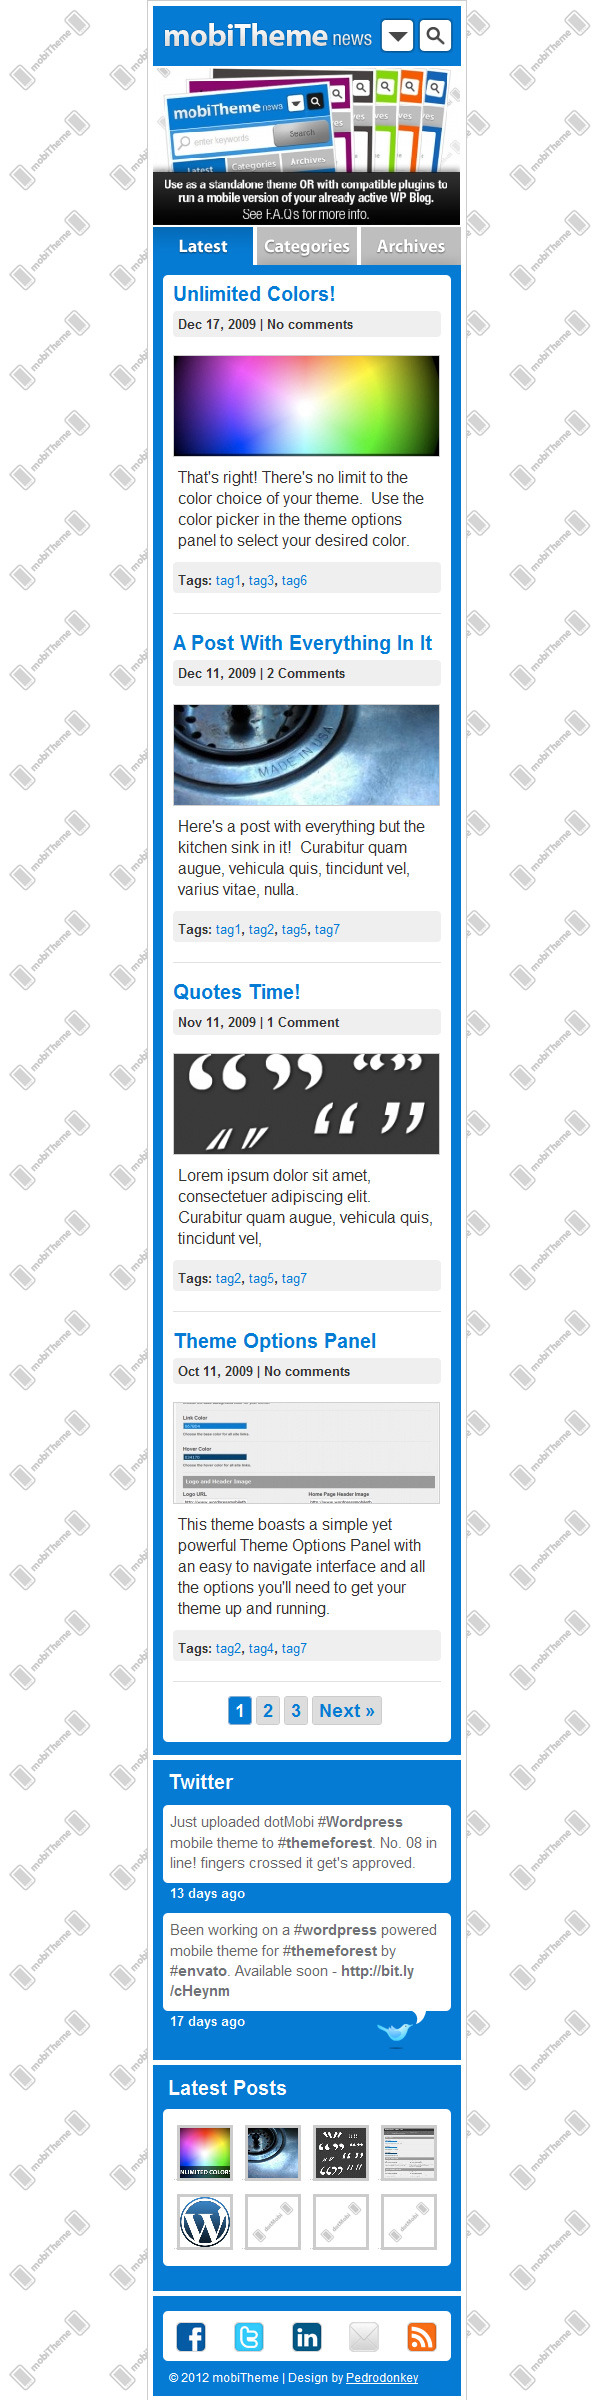 mobiTheme - WordPress Theme for Mobile Devices - Home page with header image.